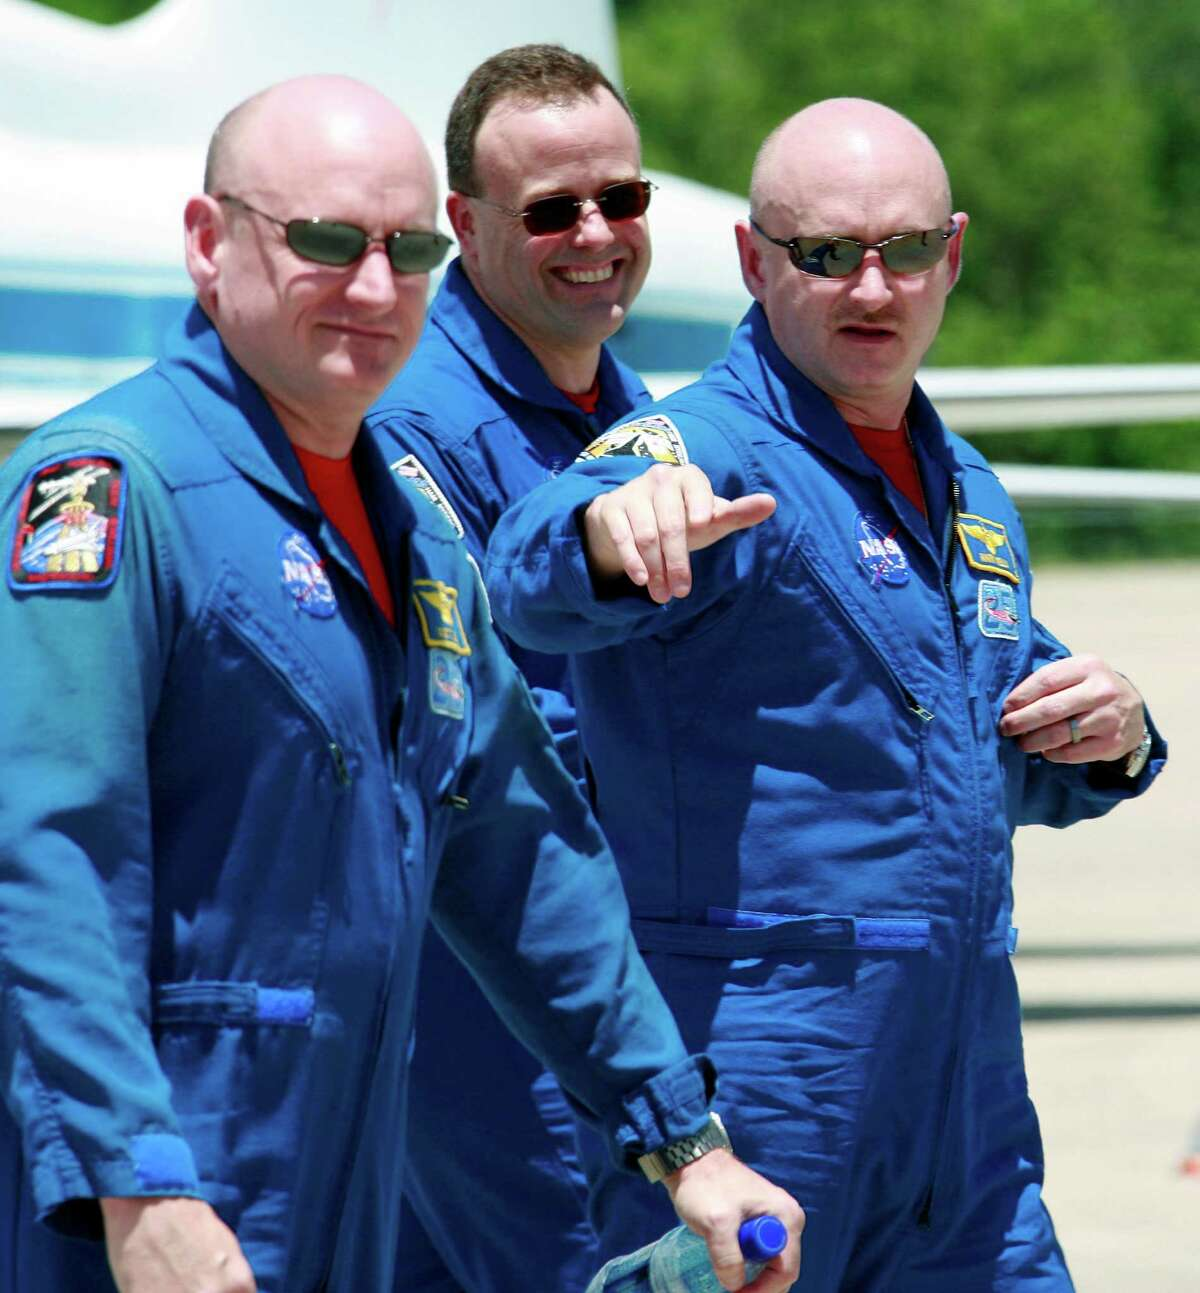 Scott Kelly, left, and his twin, former astronaut Mark Kelly - seen in 2011 with NASA mission specialist Ron Garan - will be part of a unique mission in 2015.